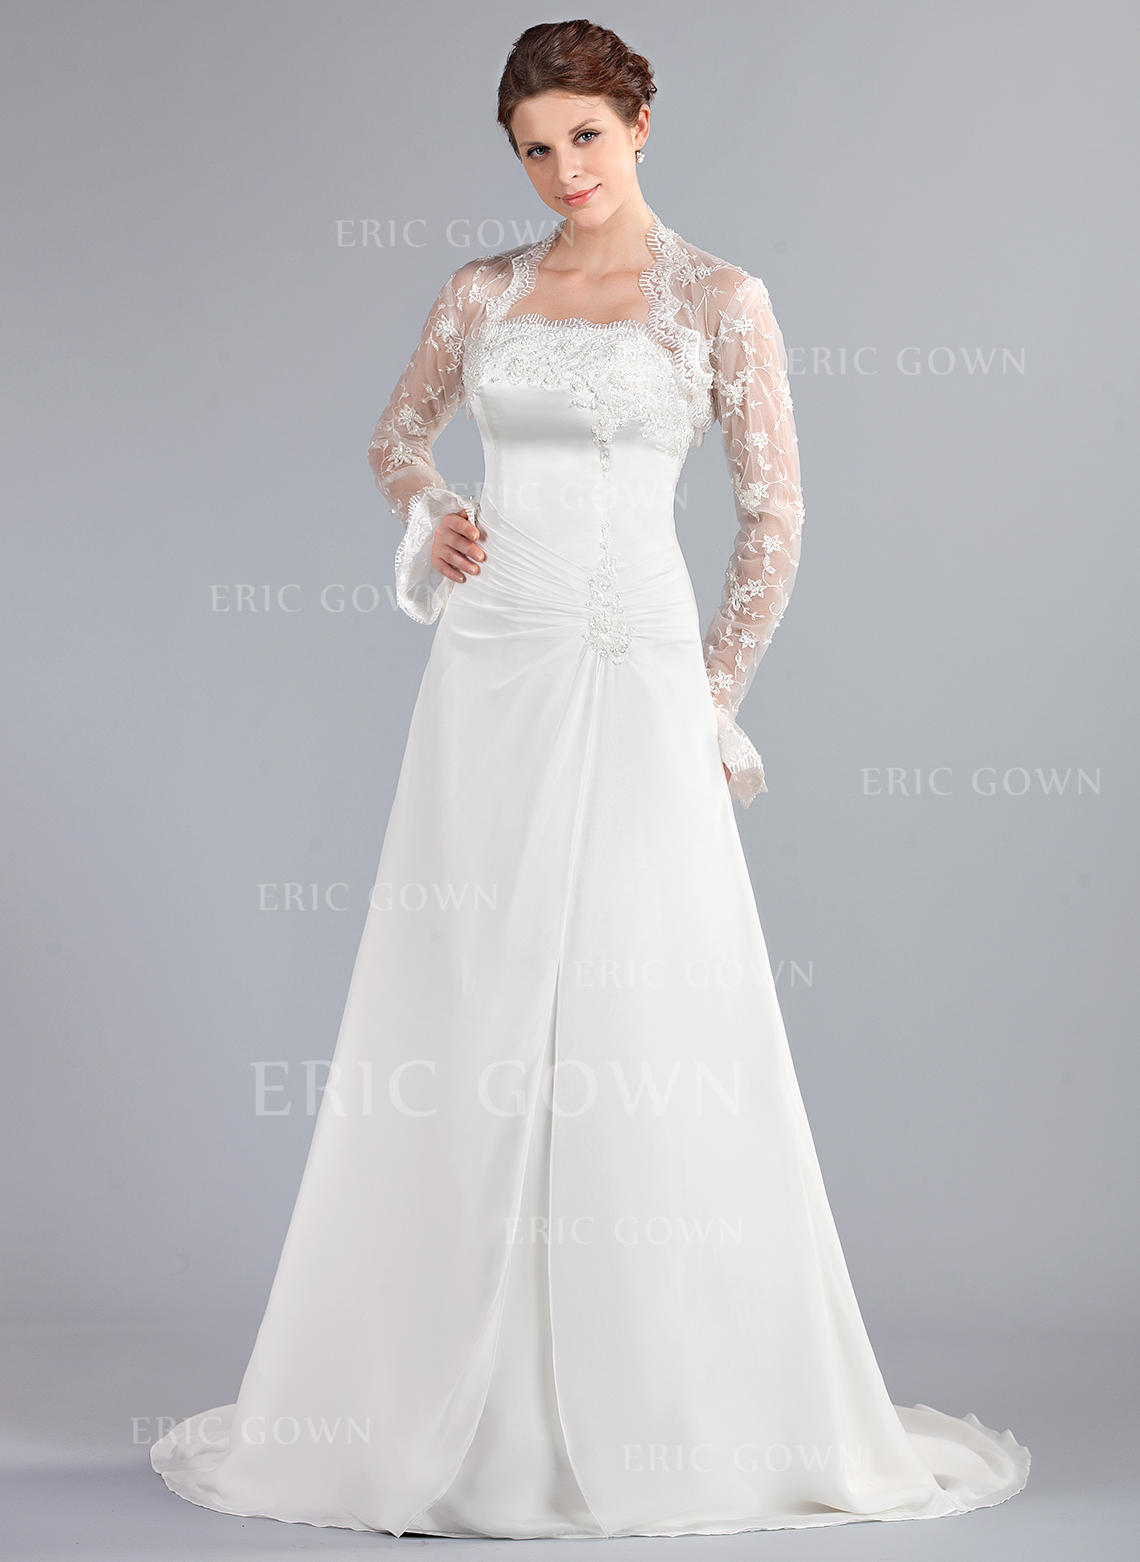 81badaacbeb A-Line Princess Strapless Court Train Wedding Dresses With Ruffle Lace  Beading (002000042. Loading zoom